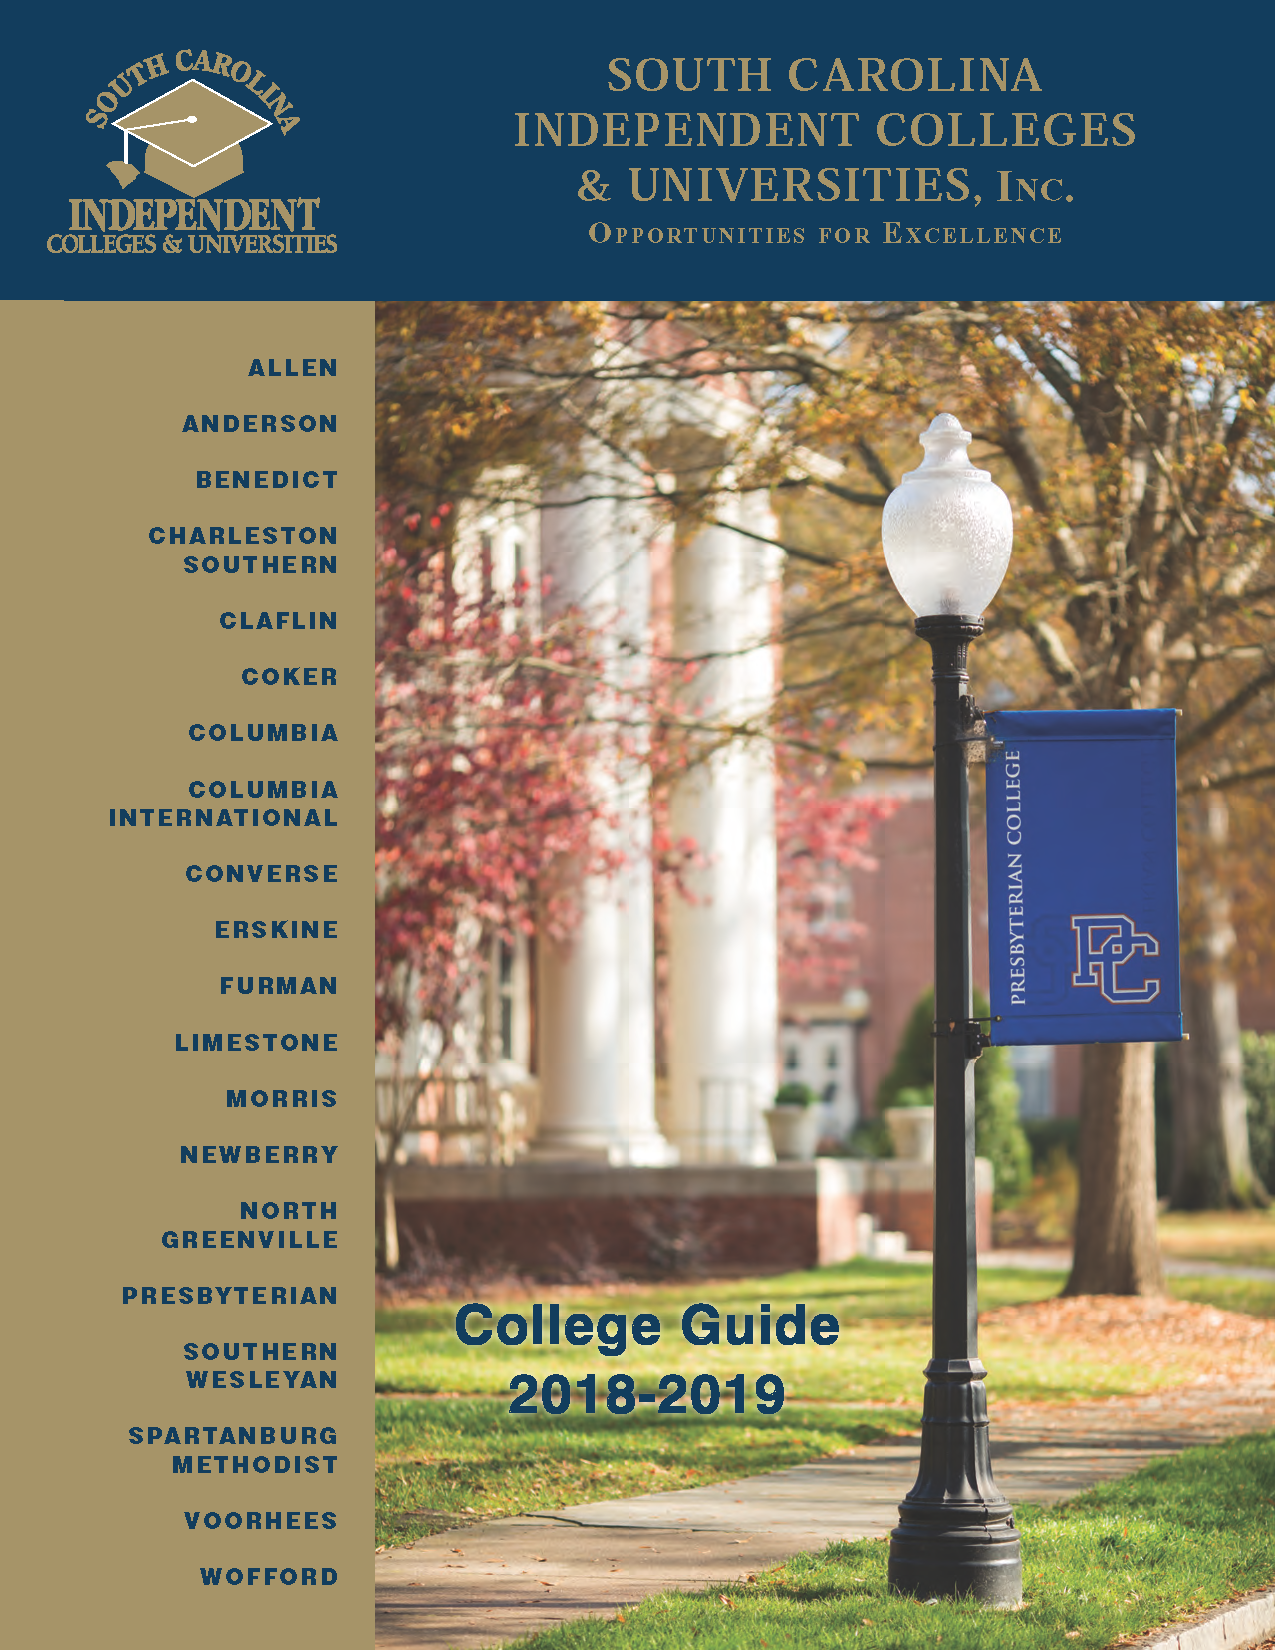 SCICU-2018-19 College Guide